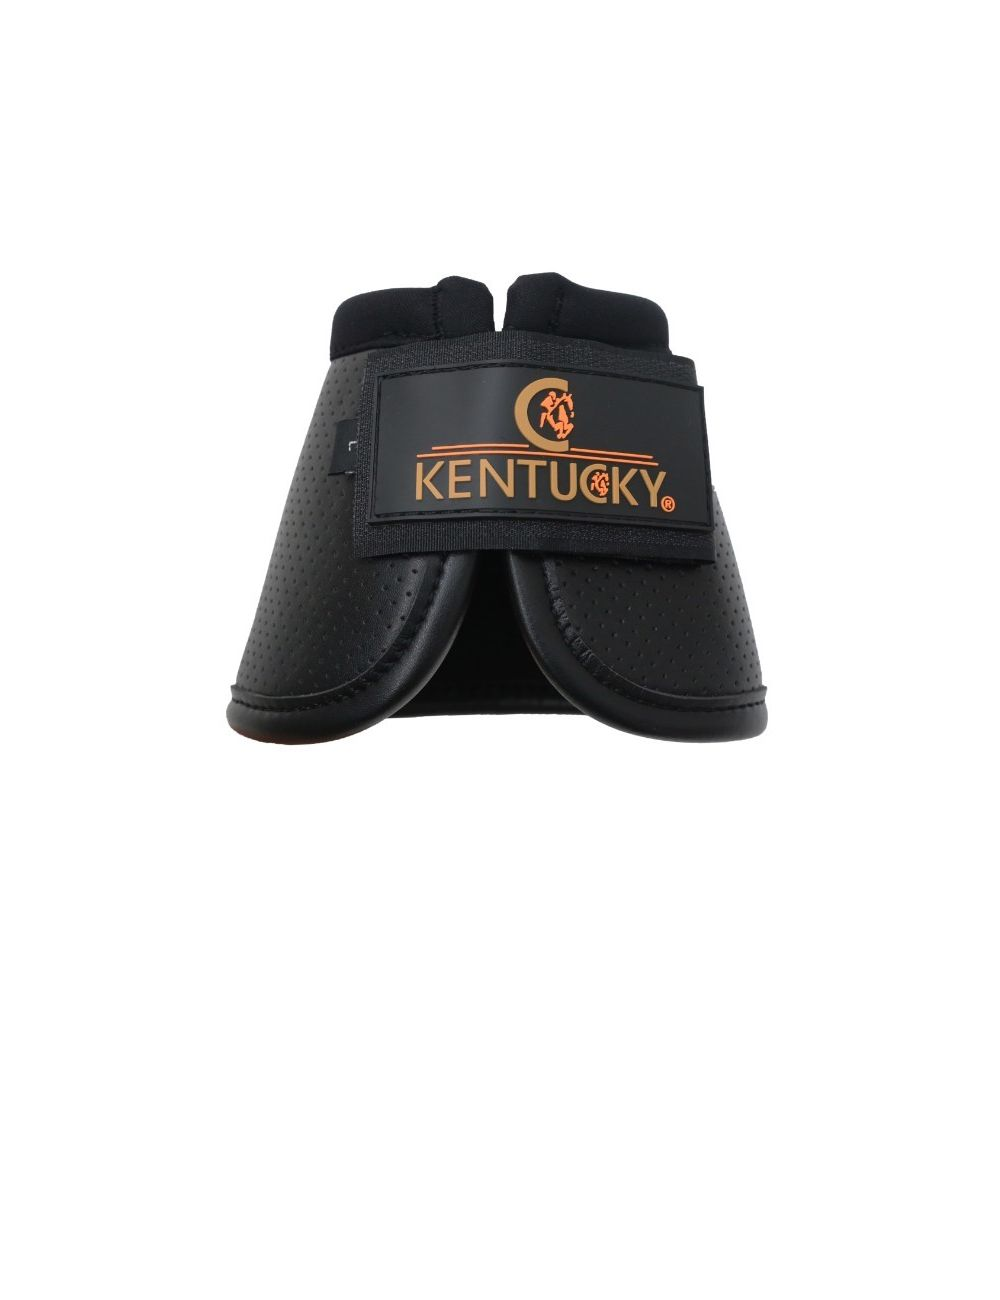 Kentucky horsewear overreach boots Air Tech - 1